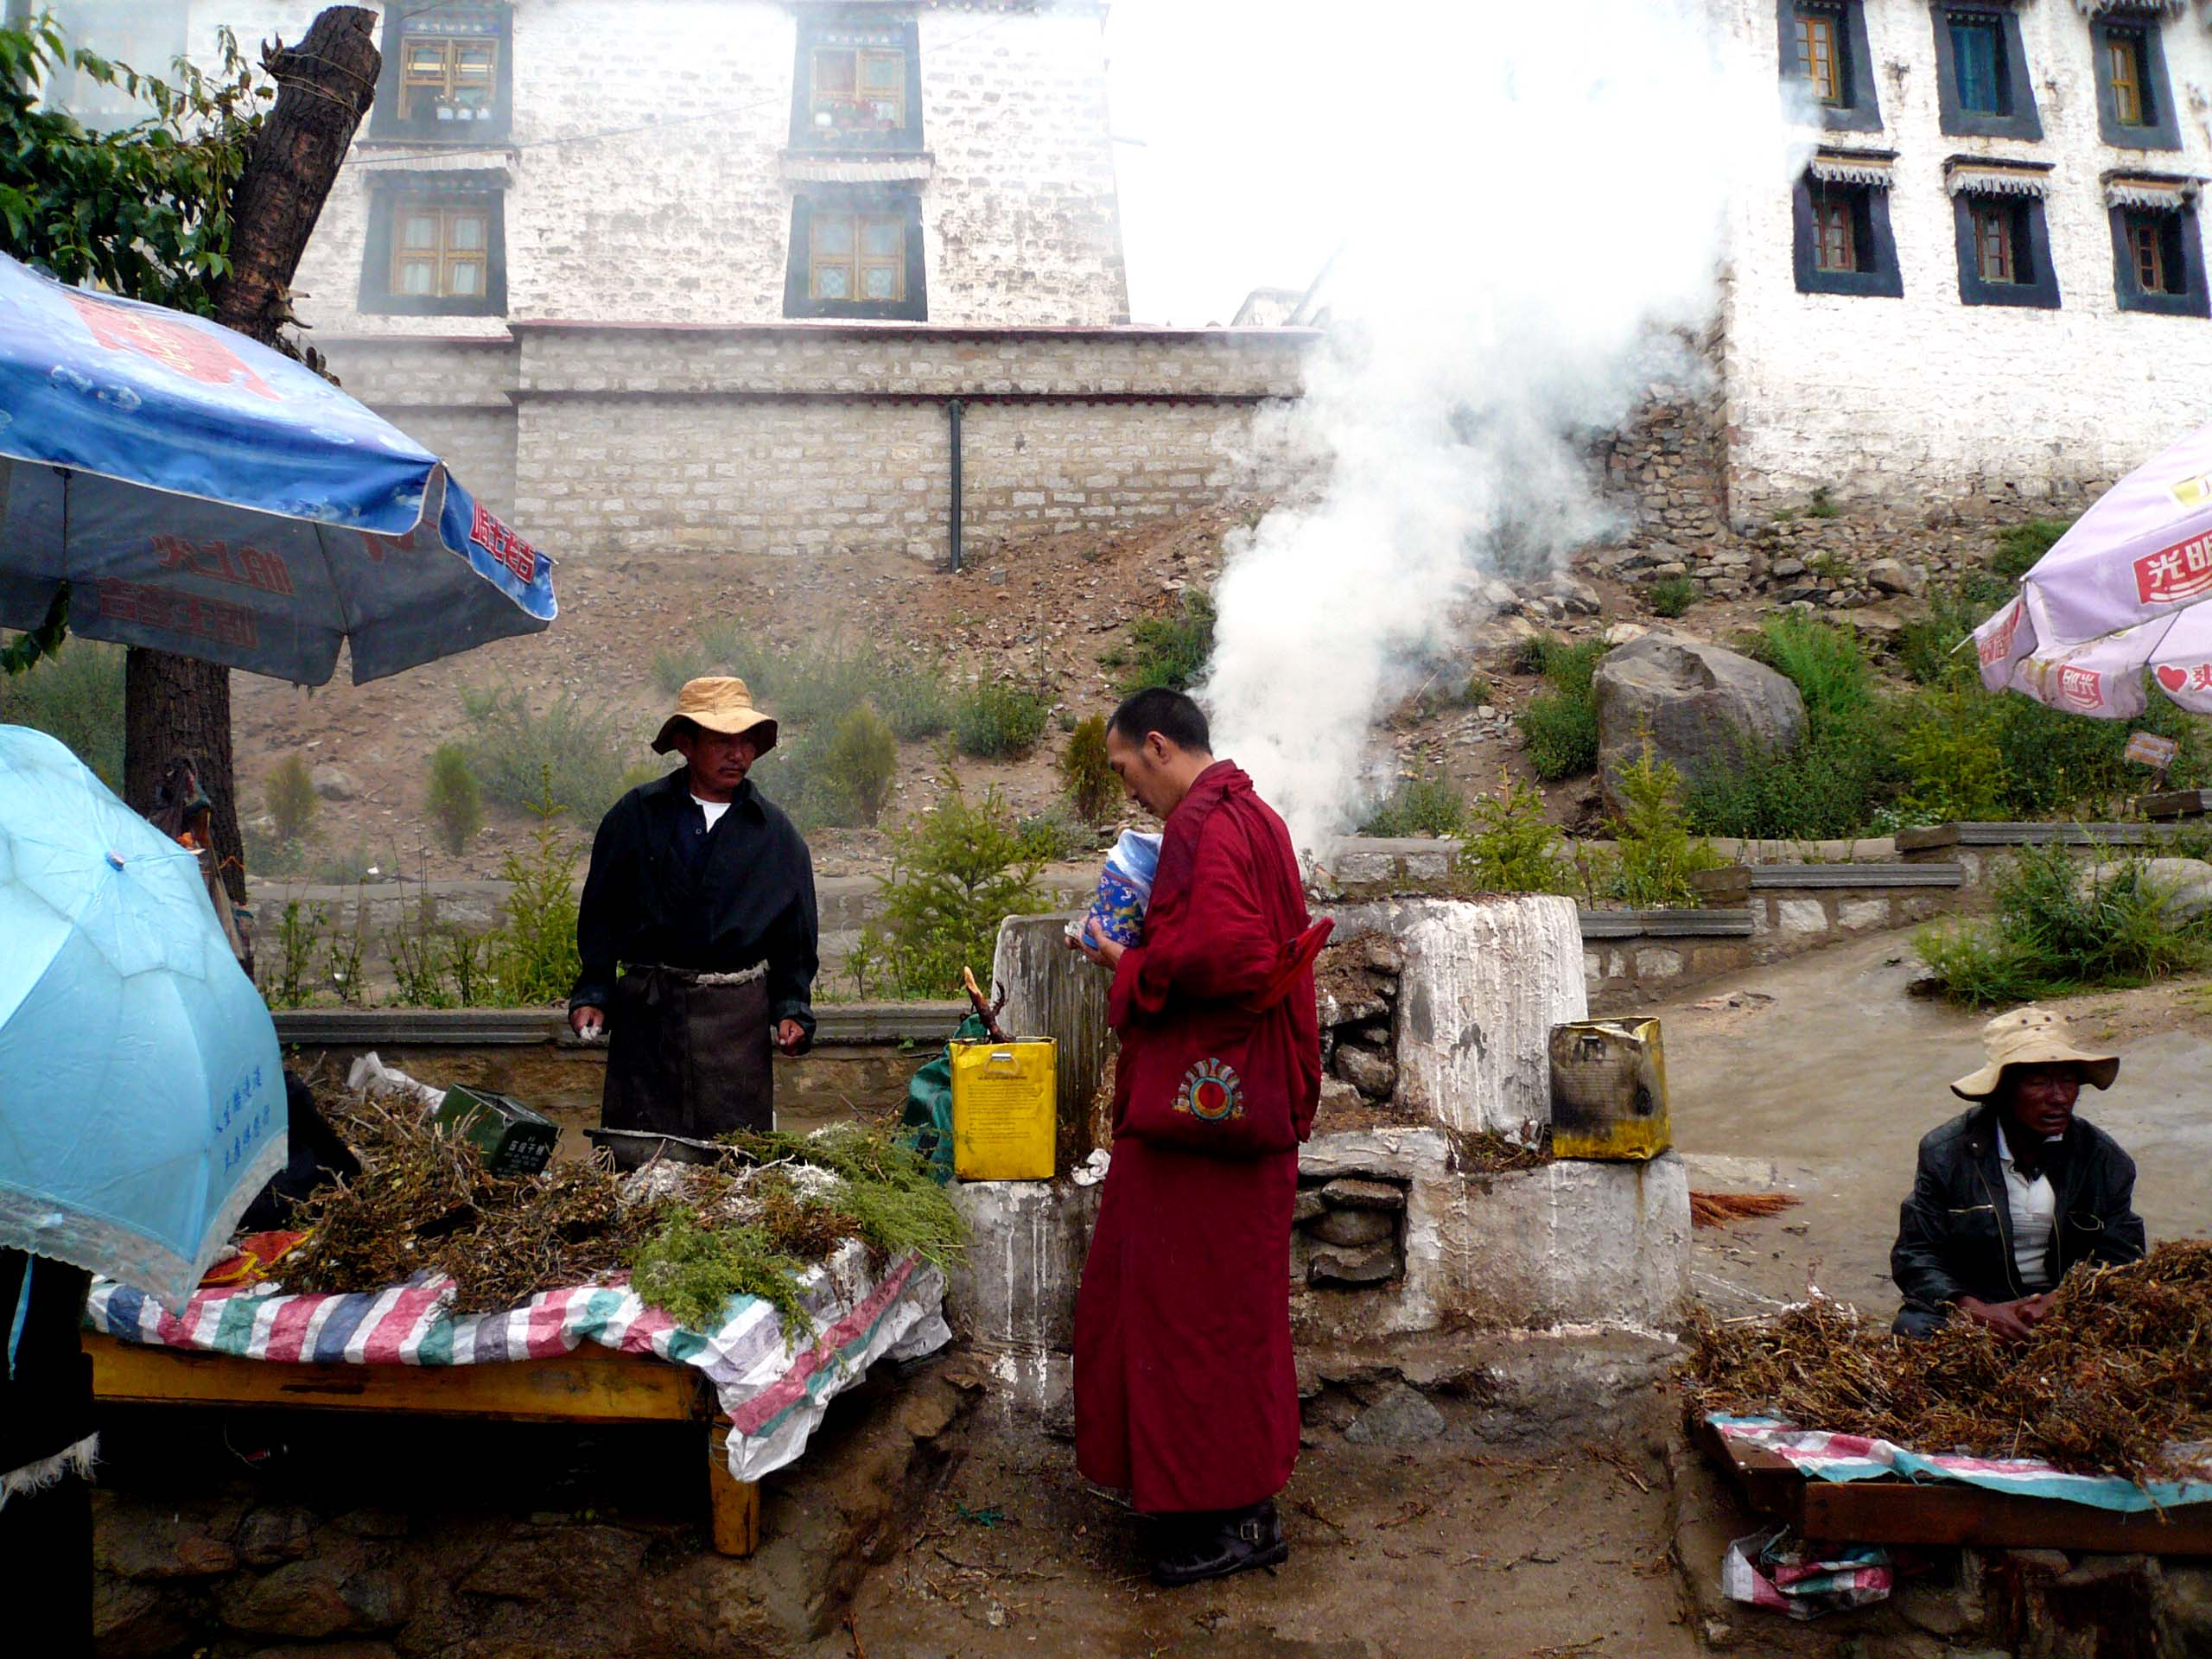 Drepung – Monastery of Collecting Rice